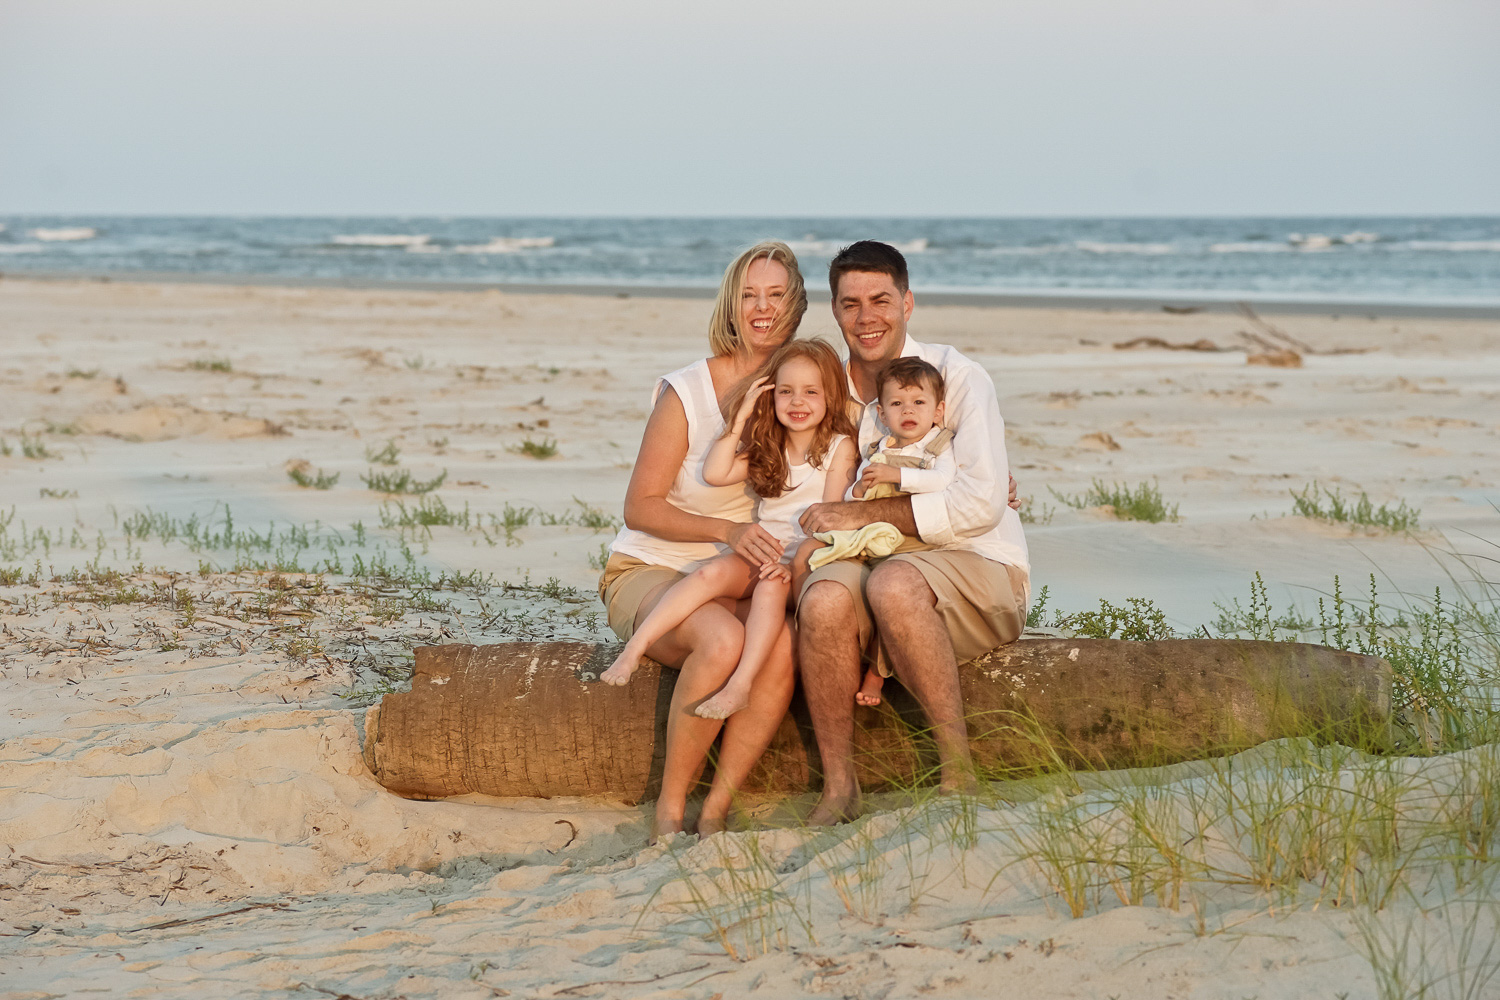 beach_portraits_beaufort-70.jpg